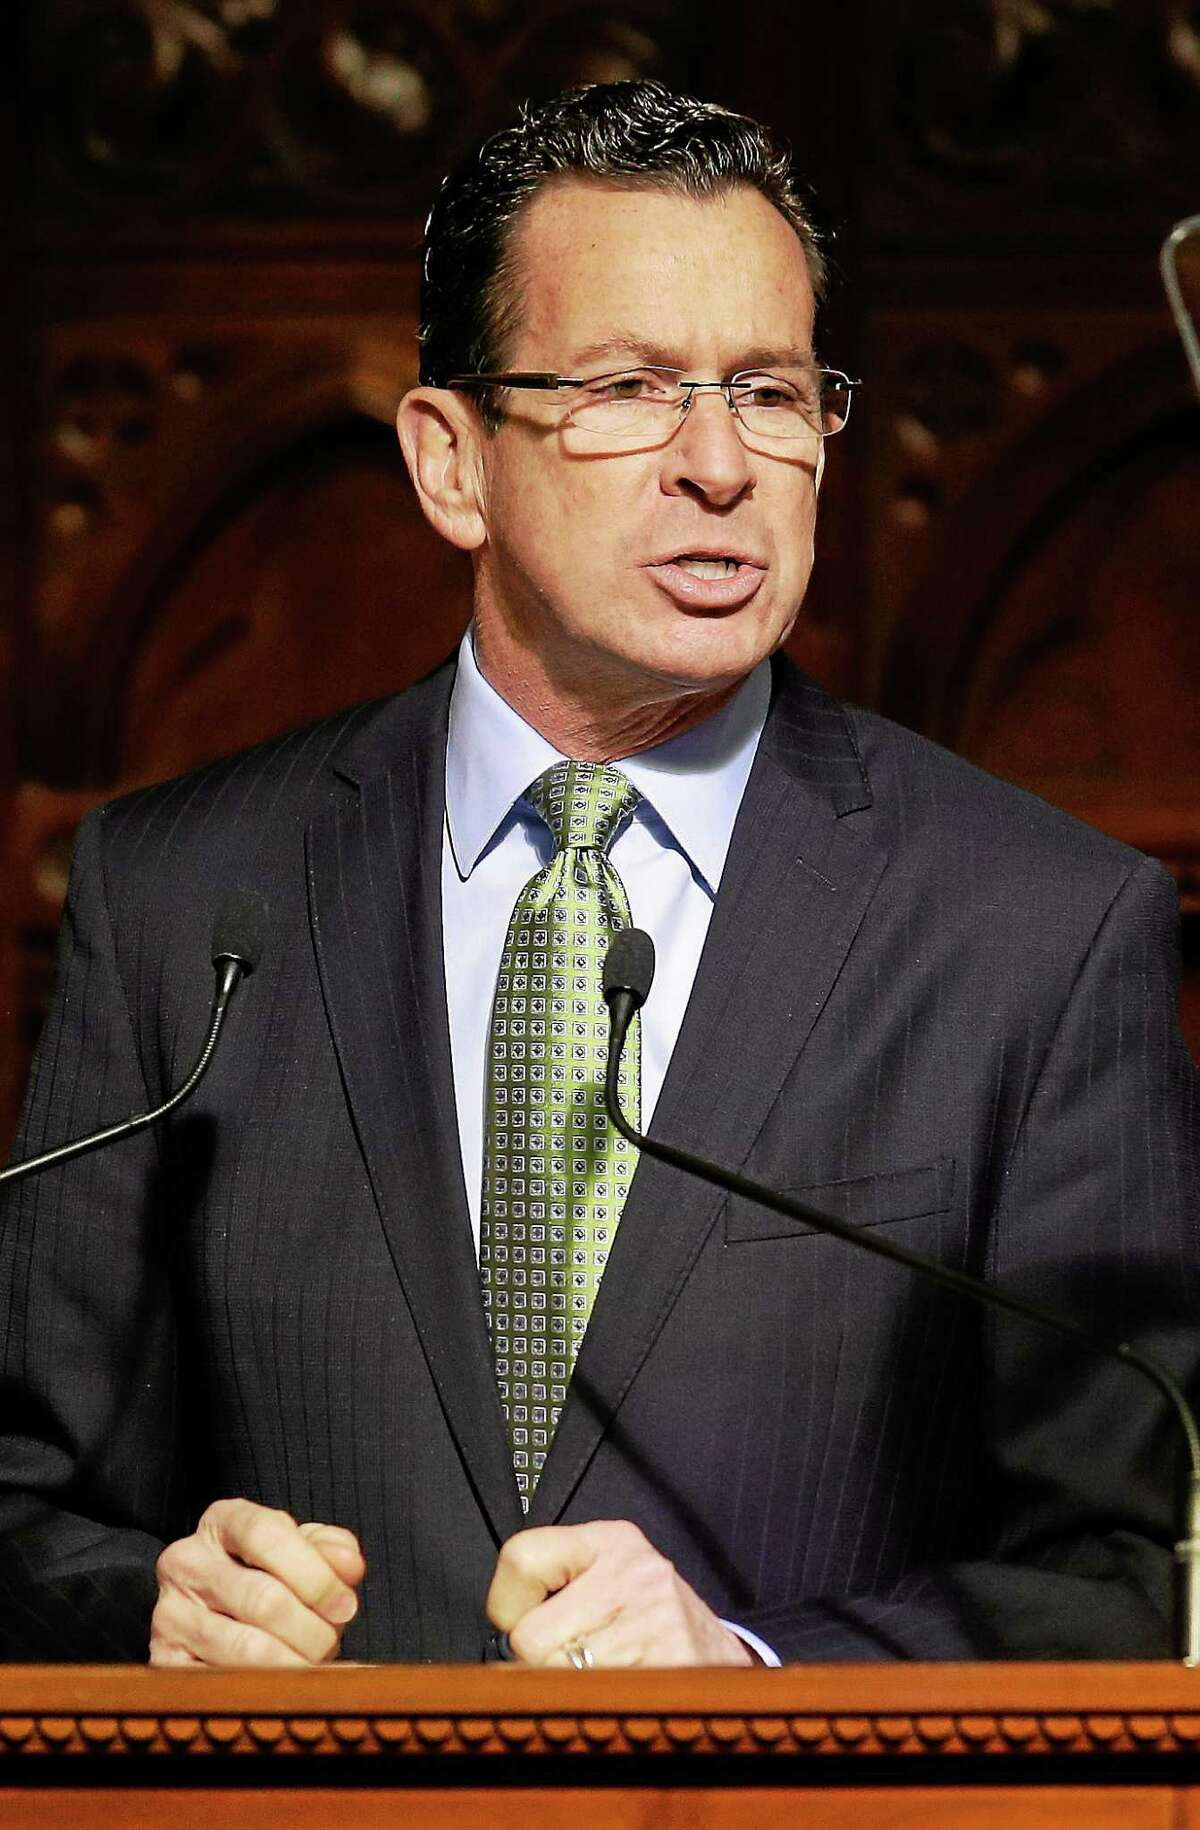 (AP Photo/Stephan Savoia) Connecticut Gov. Dannel P. Malloy gestures with his fists as he emphasizes a point during his 2014 State of the State address.